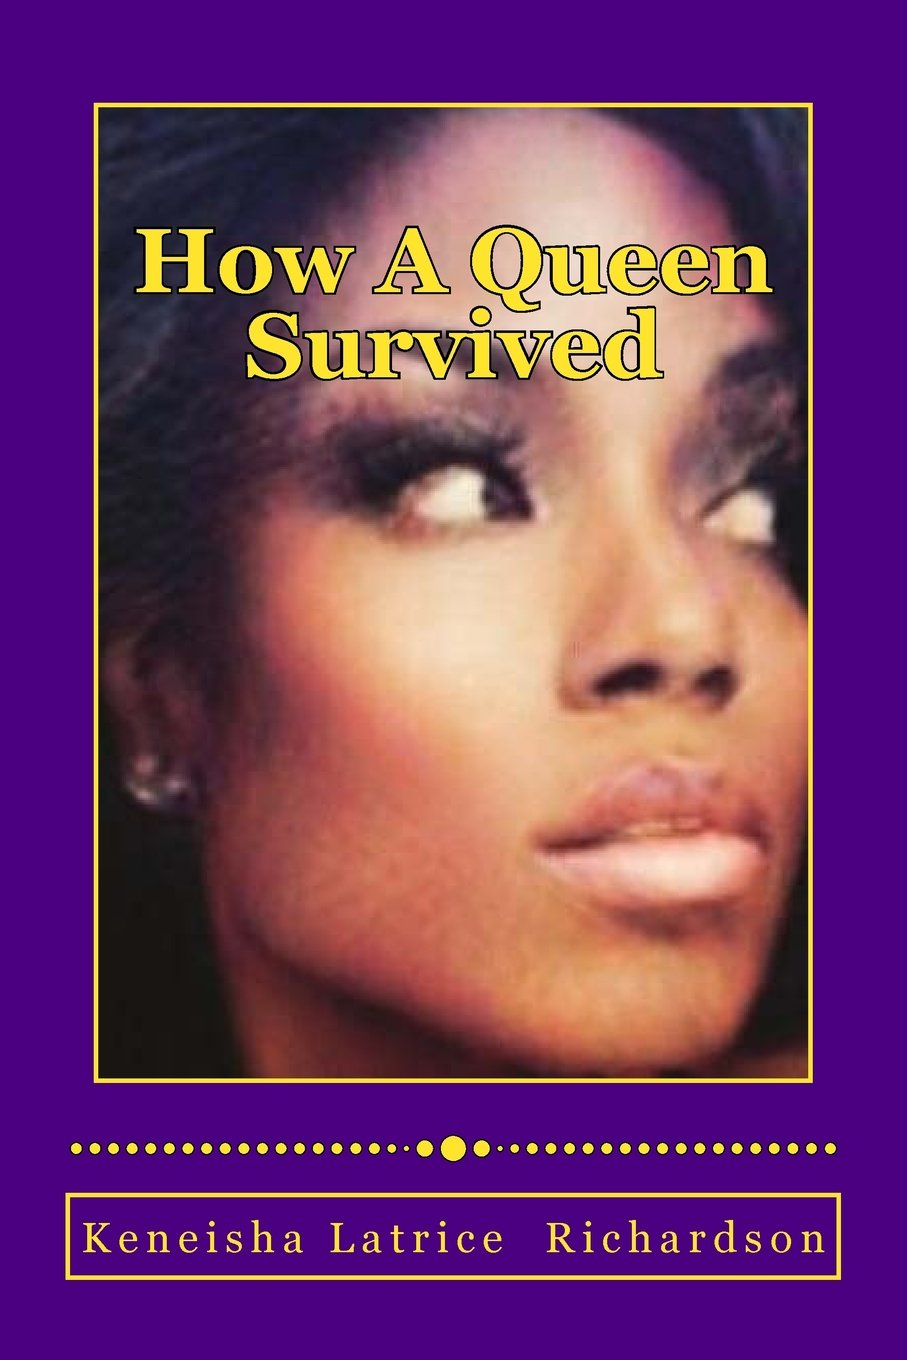 Download How A Queen Survived: A queen will always turn pain into power pdf epub